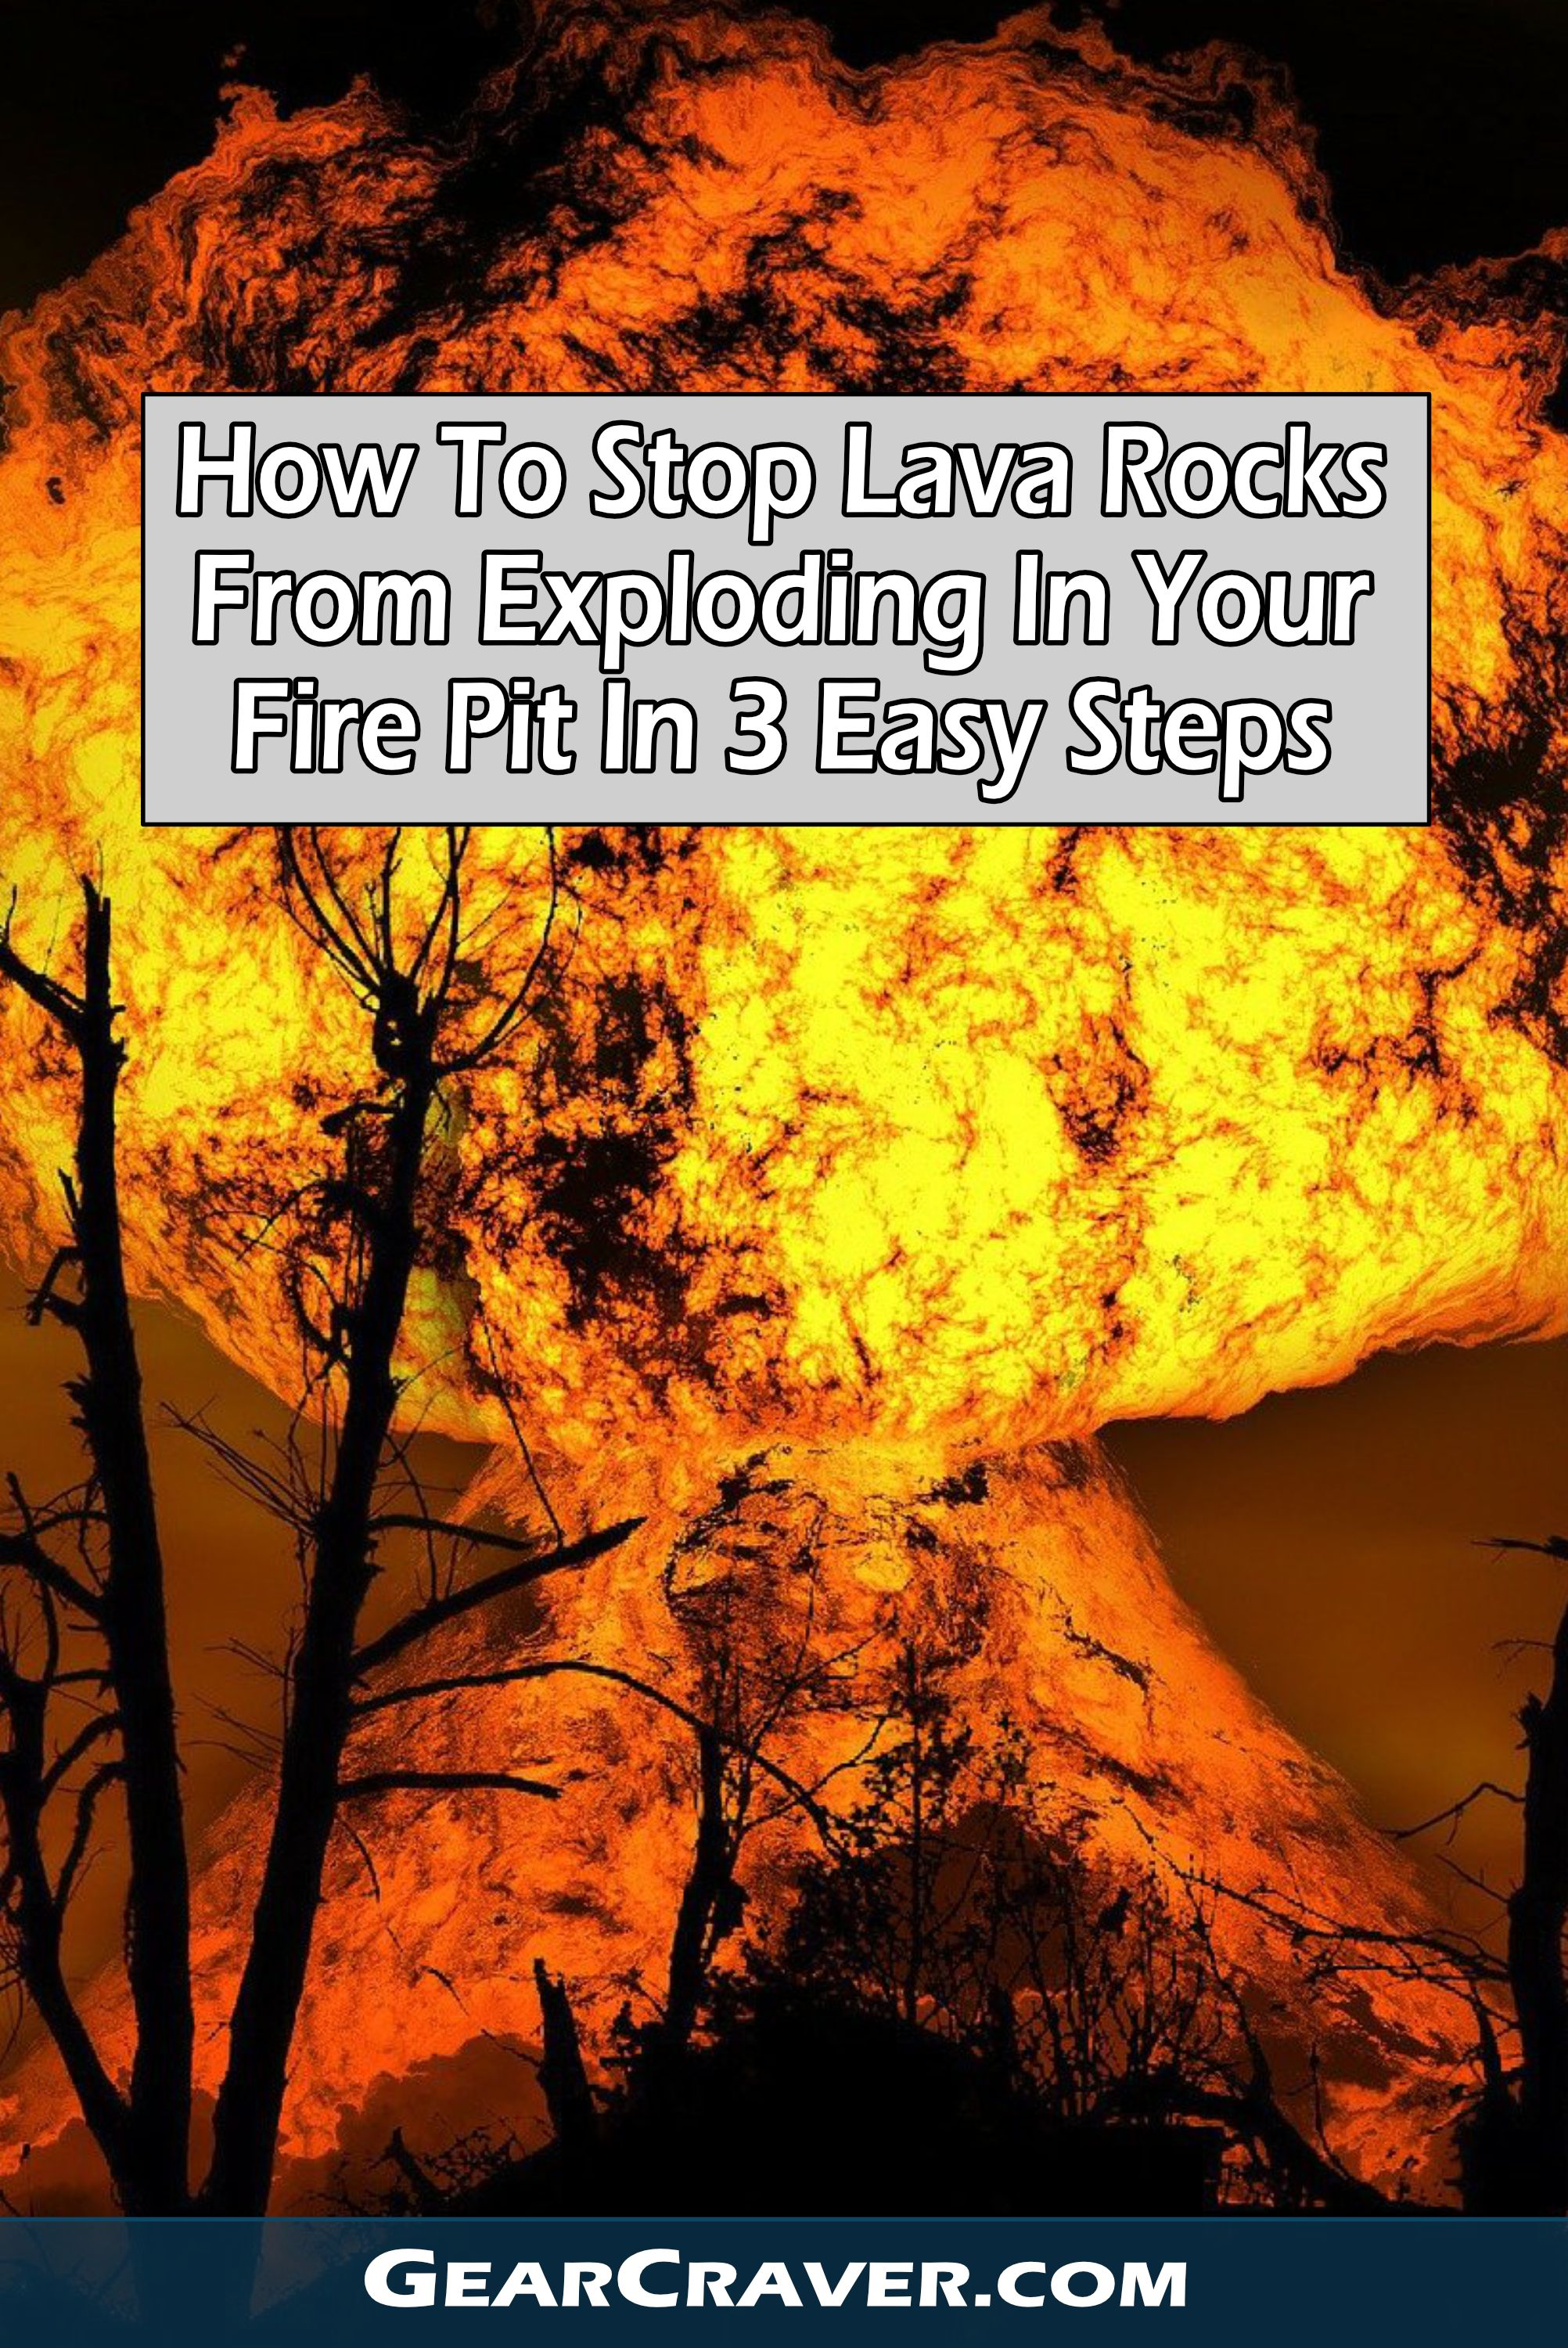 How To Stop Lava Rocks Exploding In Fire Pit In 3 Easy Steps Fire Pit Lava Rock Propane Fire Pit